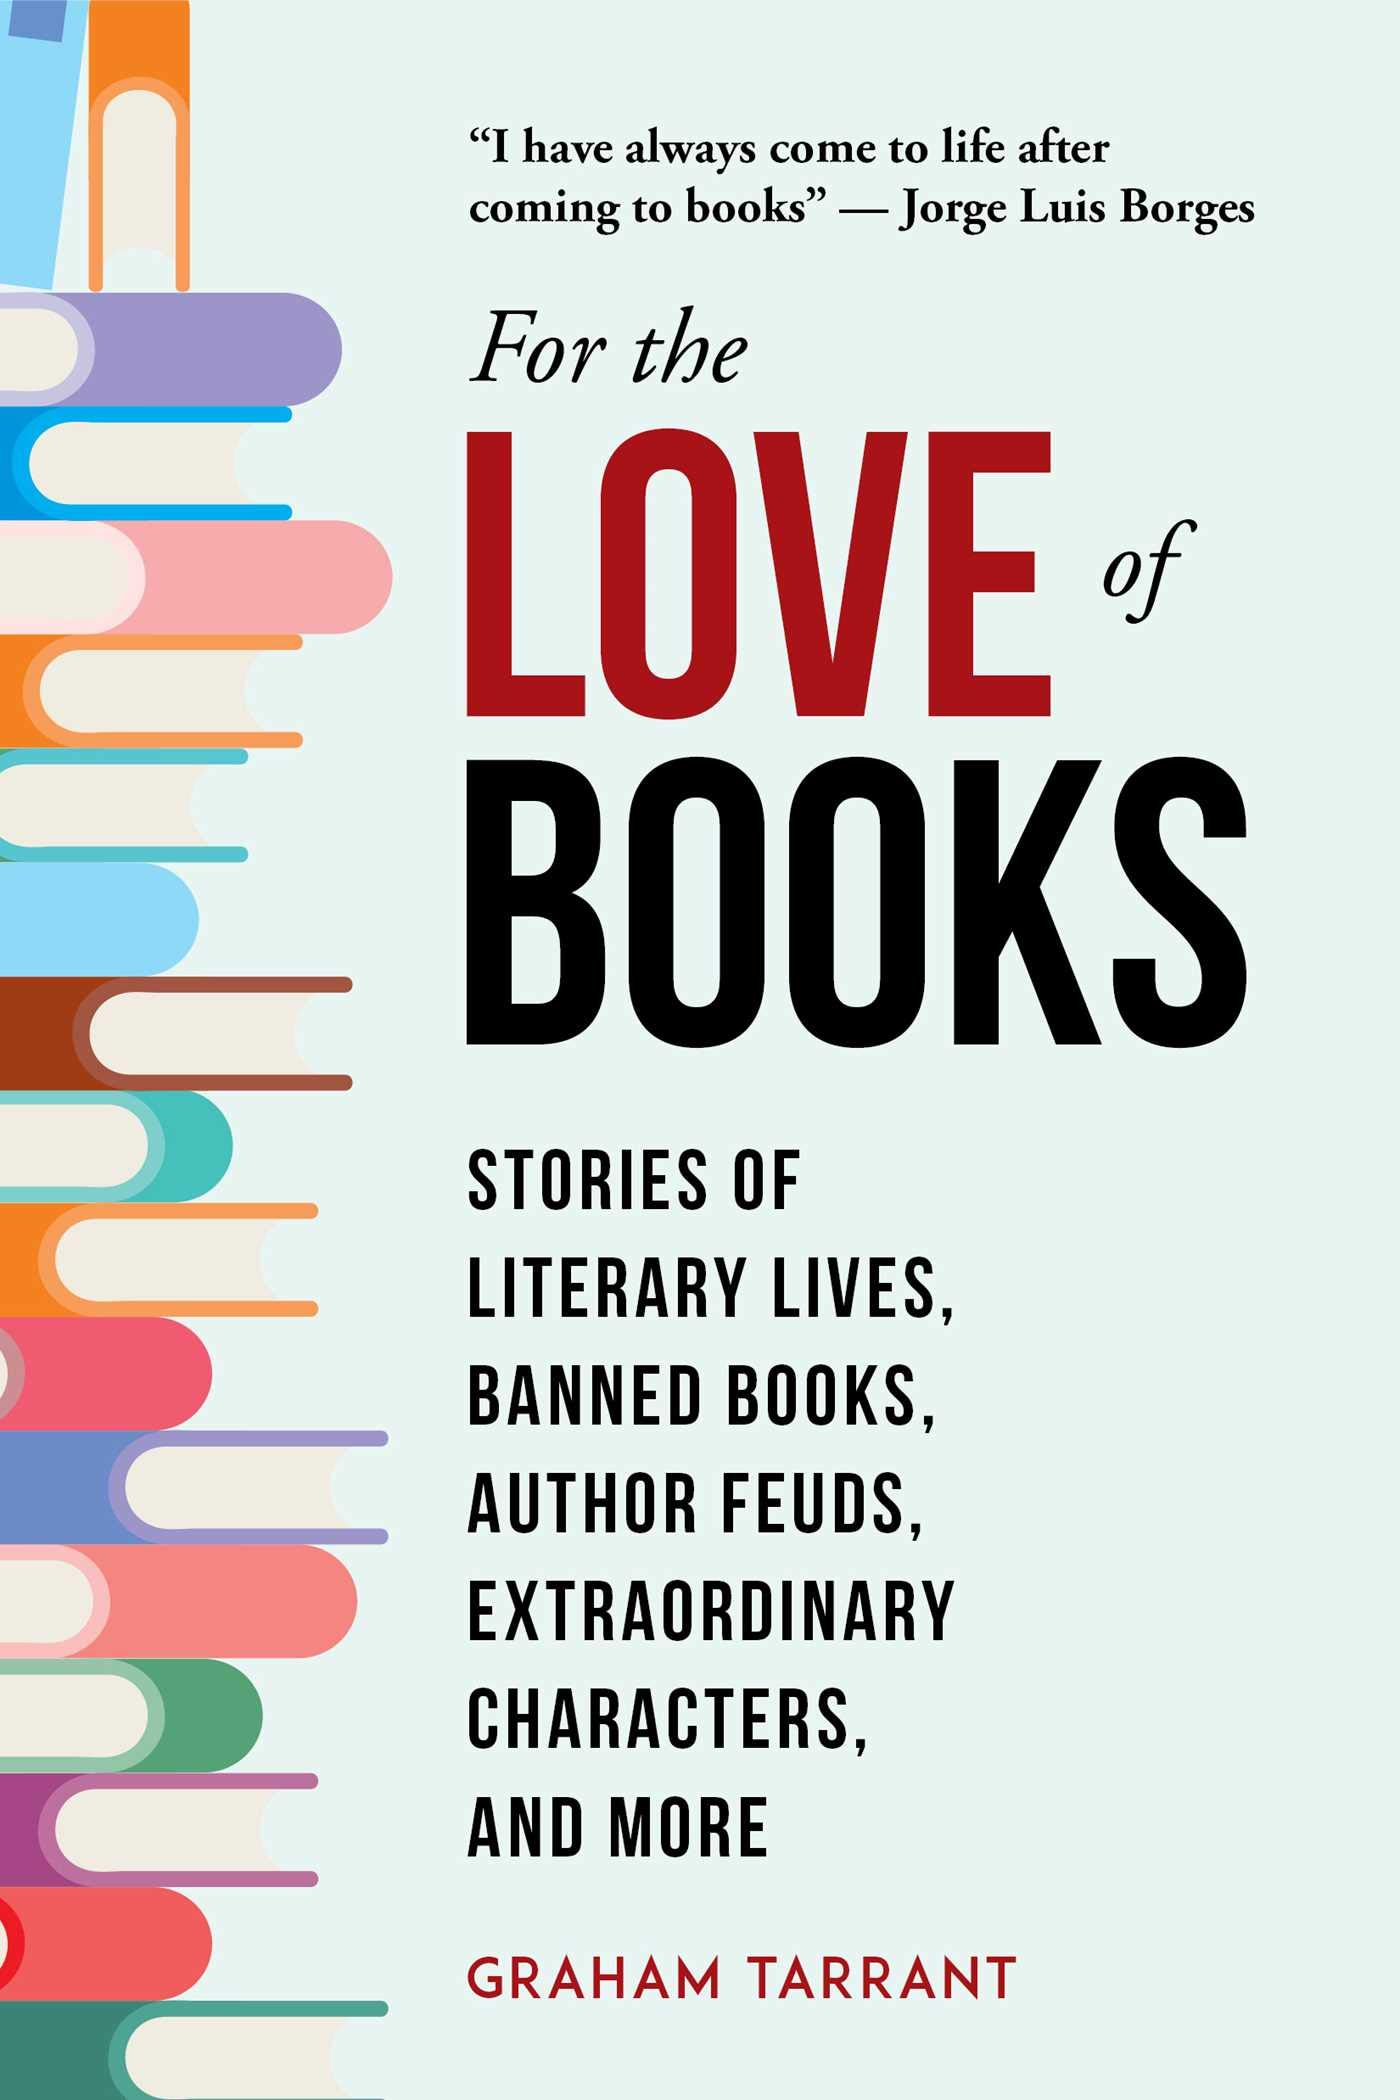 Image result for For the Love of Books: Stories of Literary Lives, Banned Books, Author Feuds, Extraordinary Characters, and More Graham Tarrant